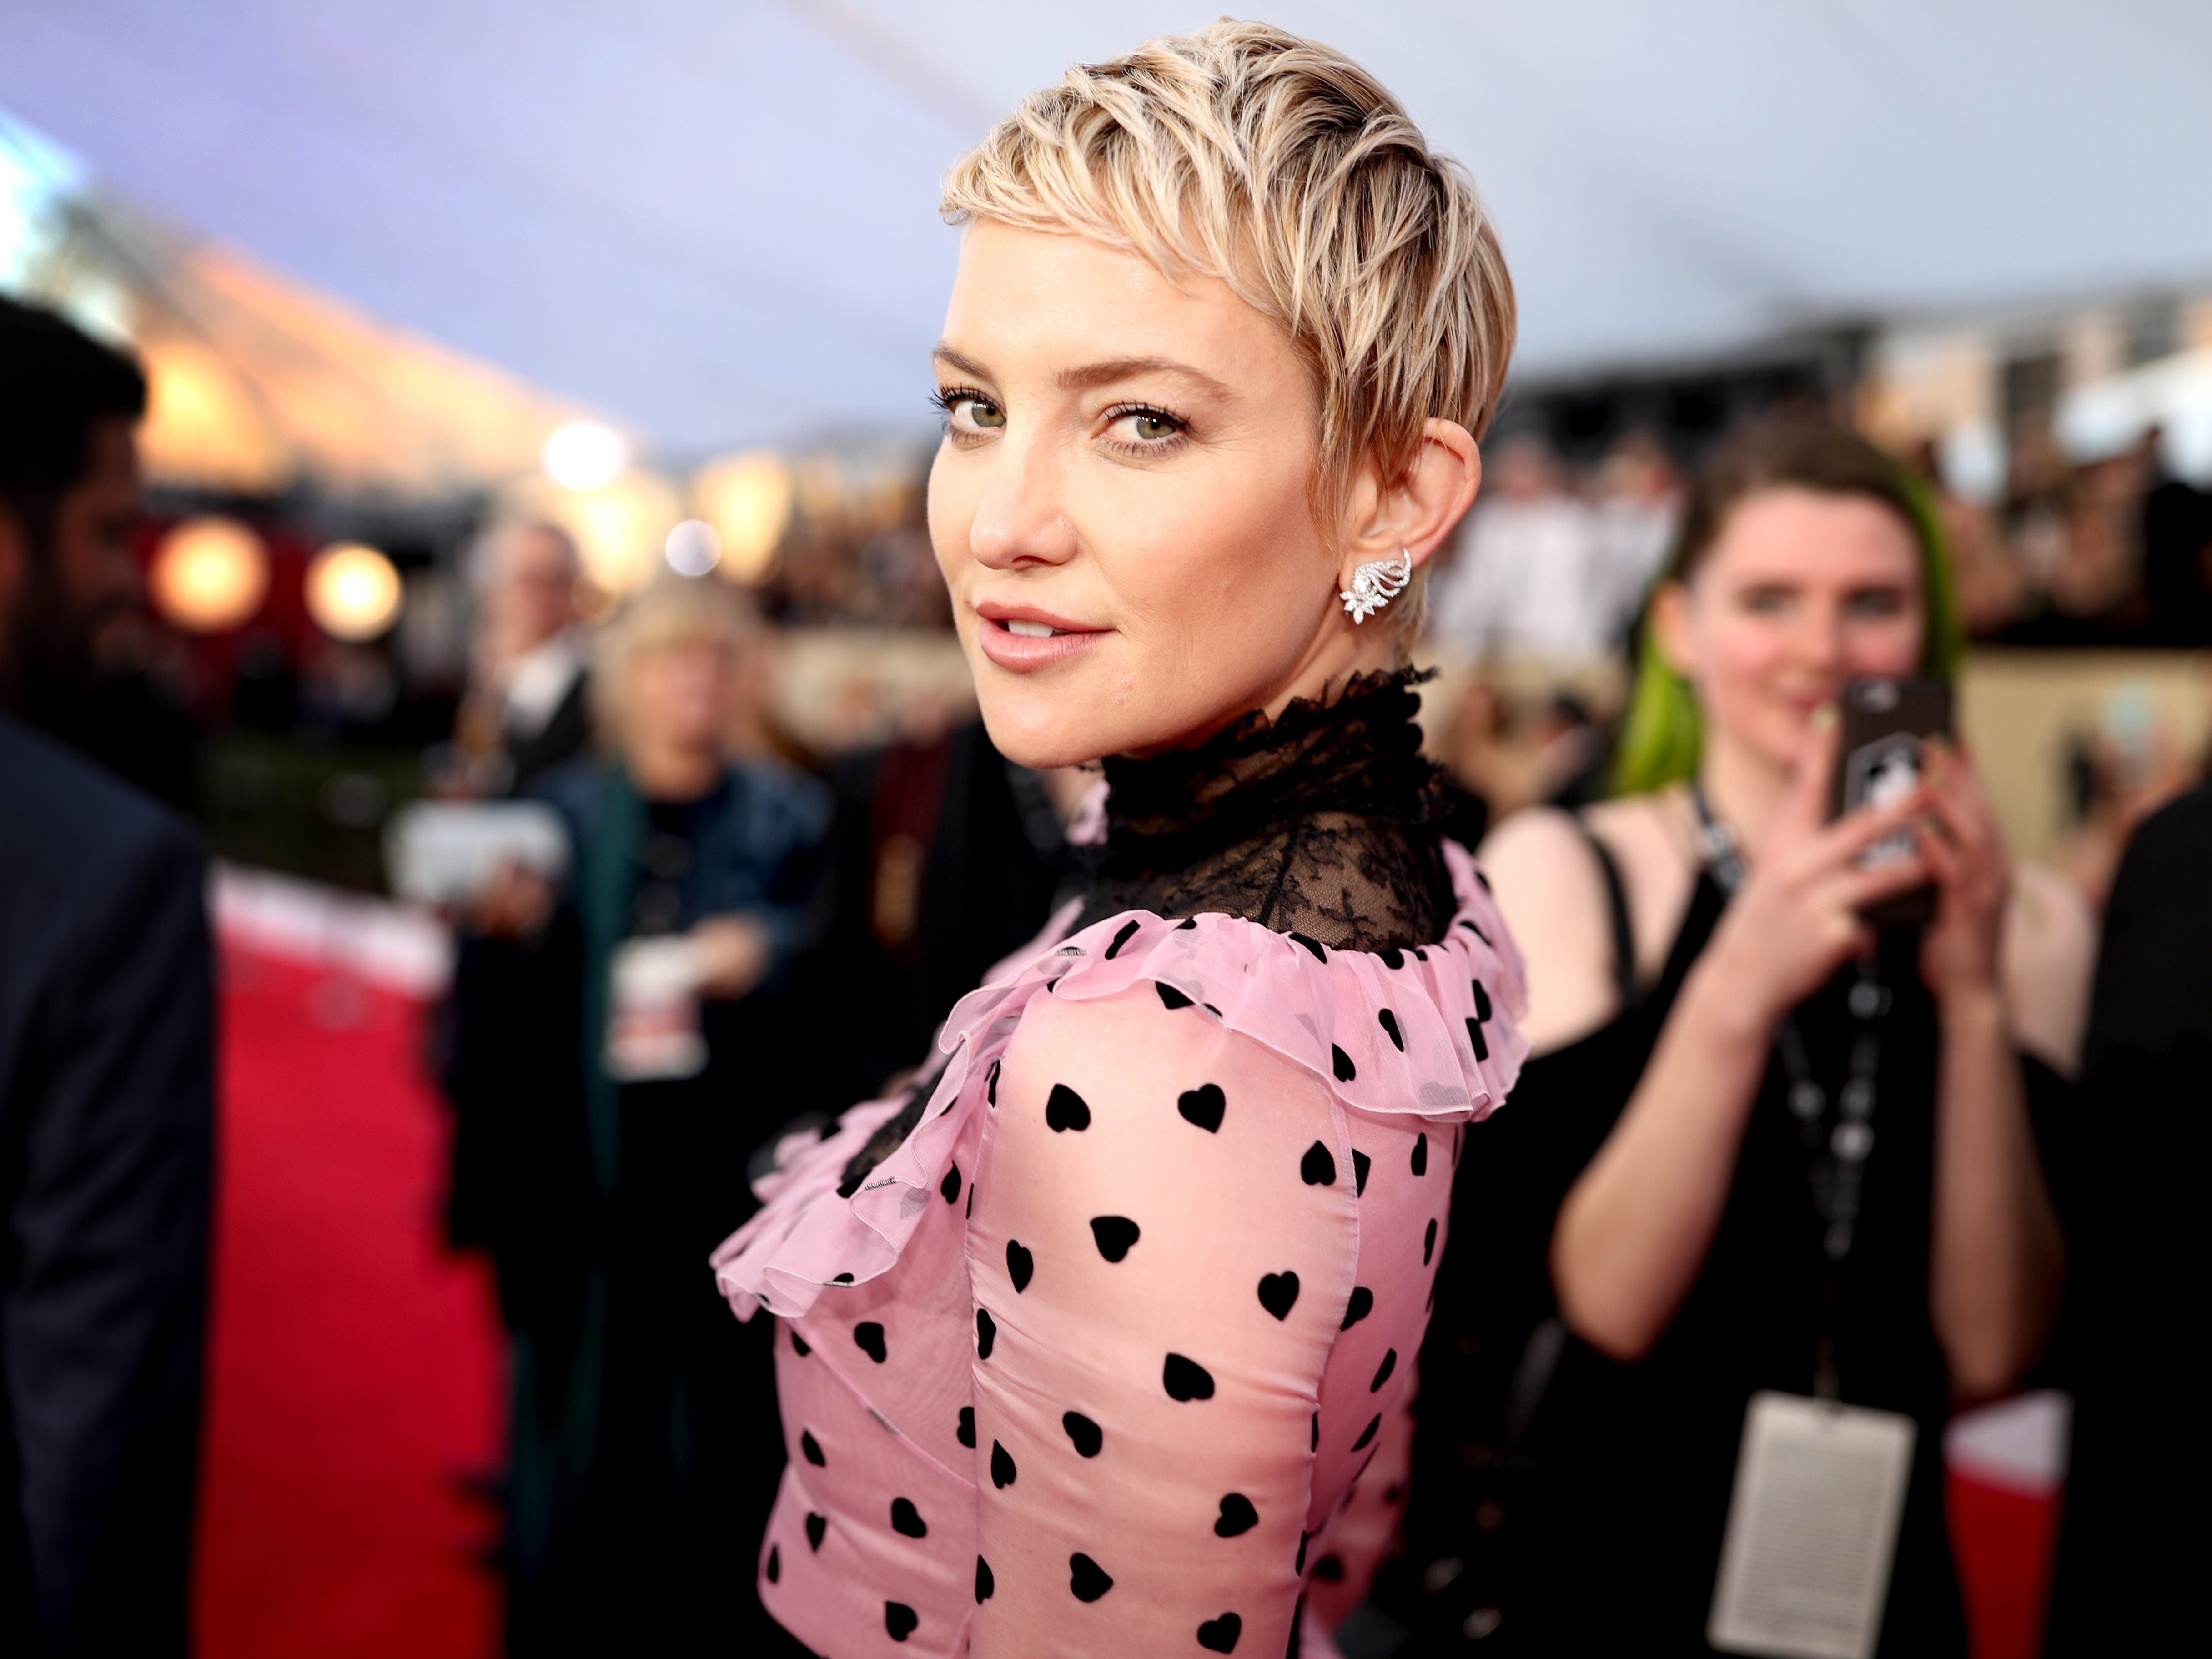 LOS ANGELES, CA - JANUARY 21:  Actor Kate Hudson attends the 24th Annual Screen Actors Guild Awards at The Shrine Auditorium on January 21, 2018 in Los Angeles, California. 27522_010  (Photo by Christopher Polk/Getty Images for Turner Image) ORG XMIT: 775105238 ORIG FILE ID: 908525766